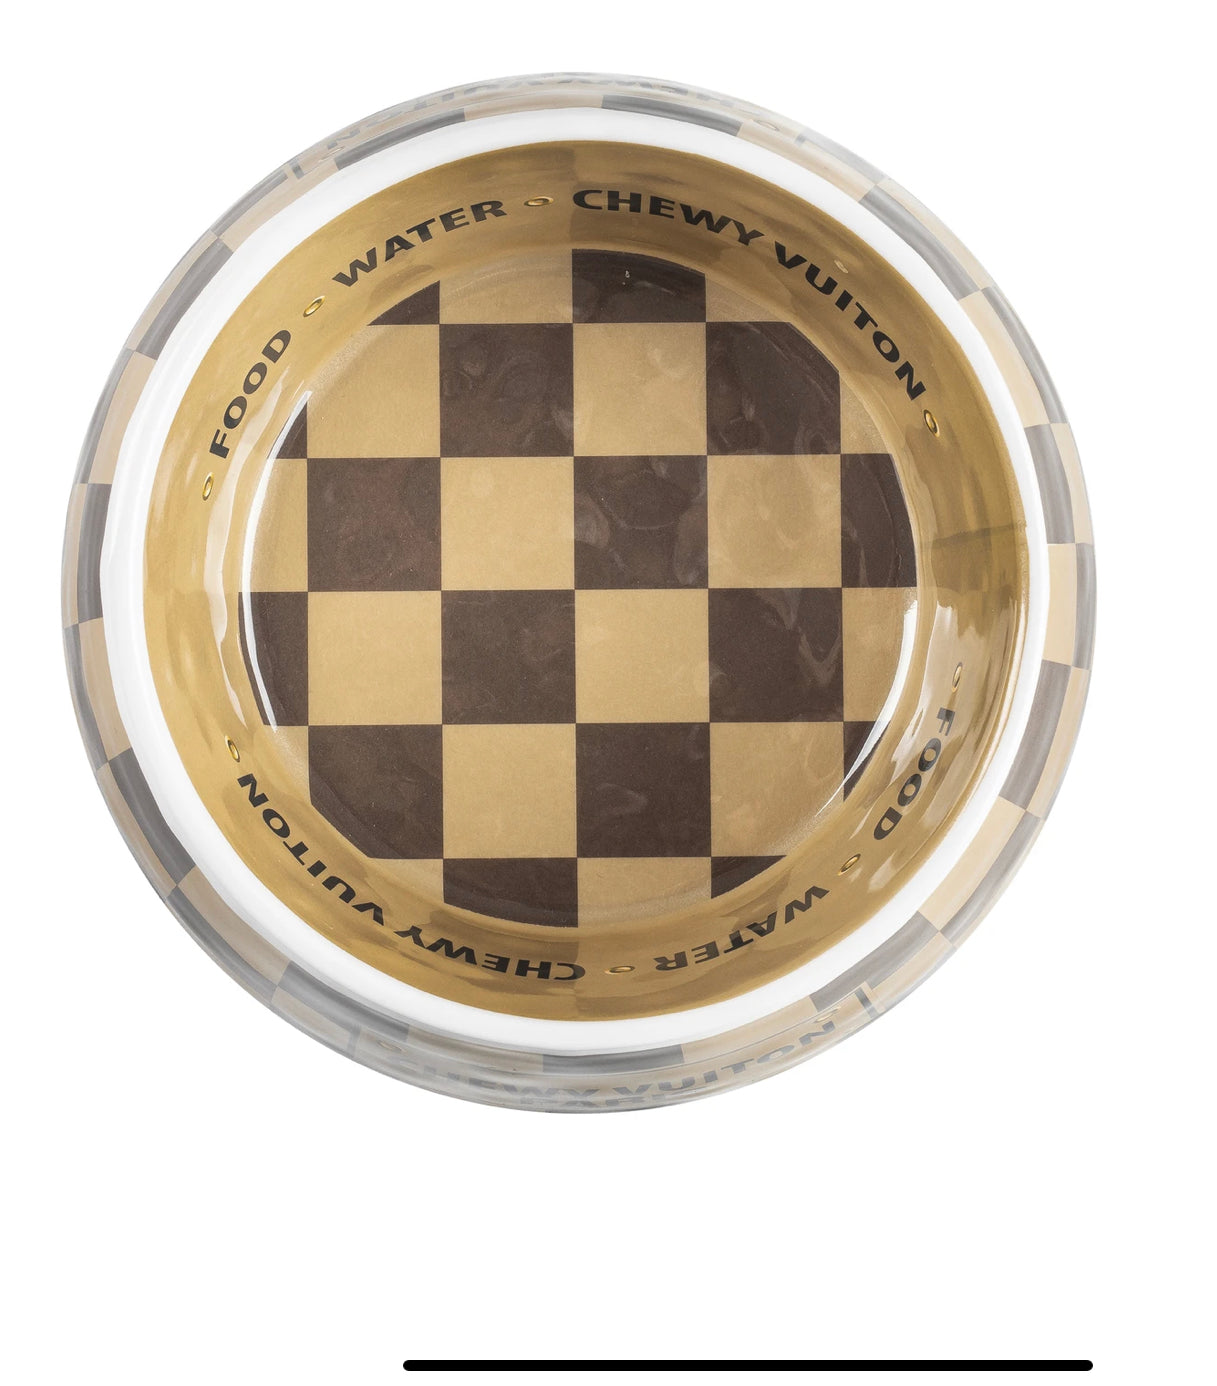 Checker Chewy Vuiton Dog Bowl